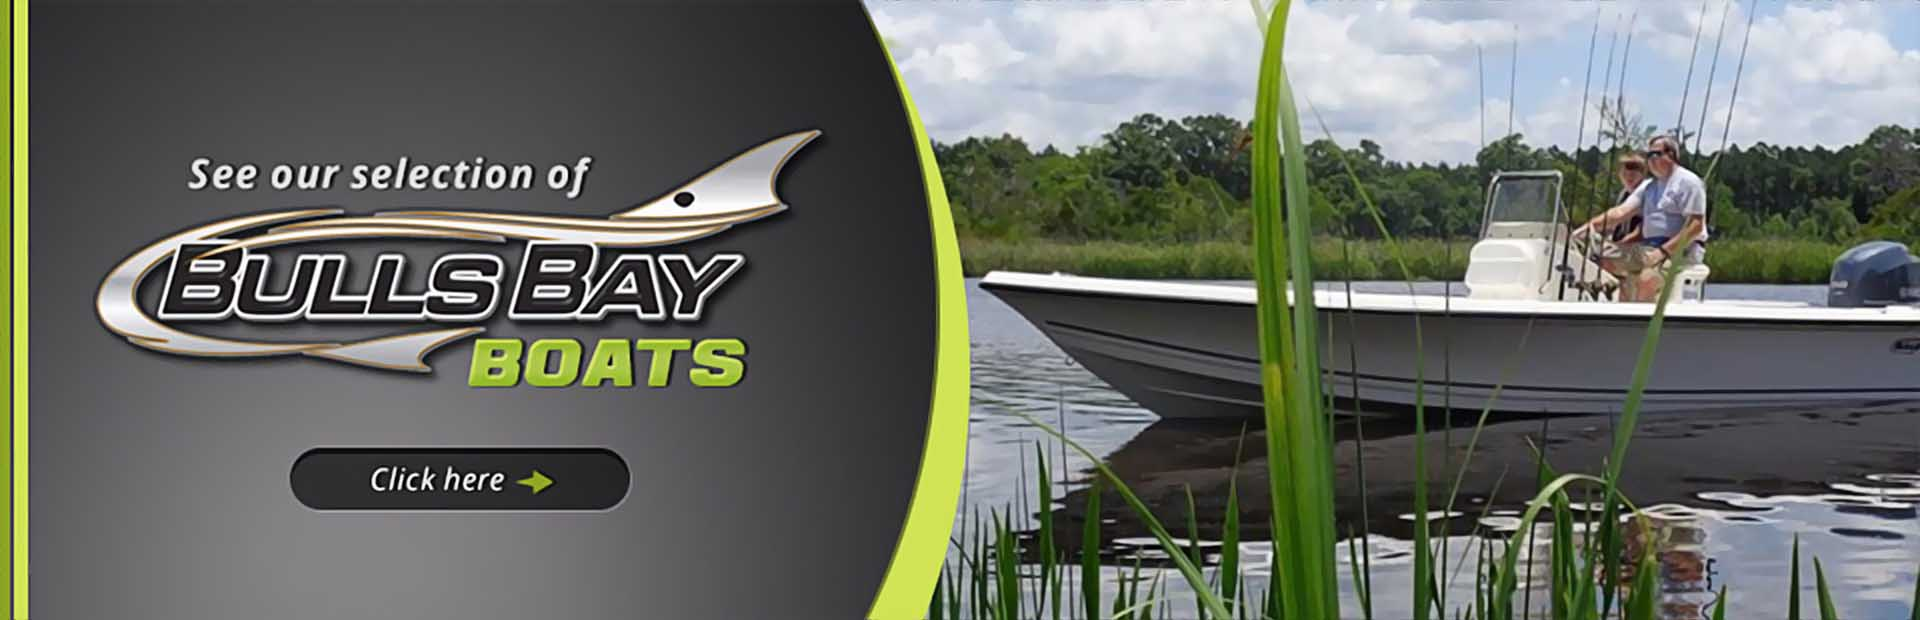 BullsBay Boats: Click here to view our showcase!